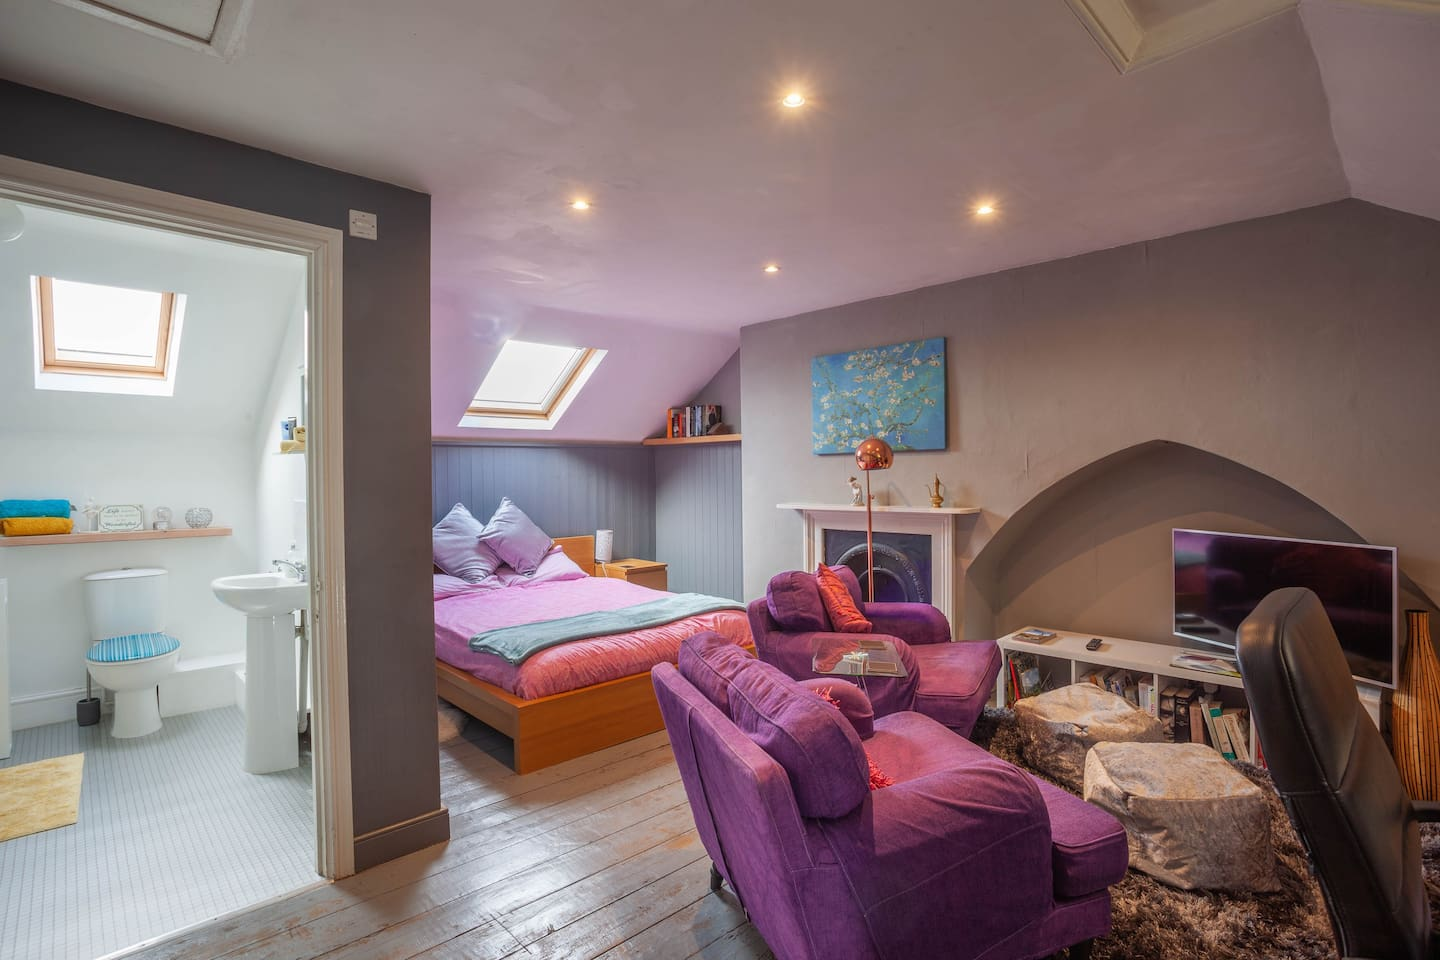 Spacious, self-contained loft with ensuite bathroom and all you need to make your stay comfortable and pleasant.